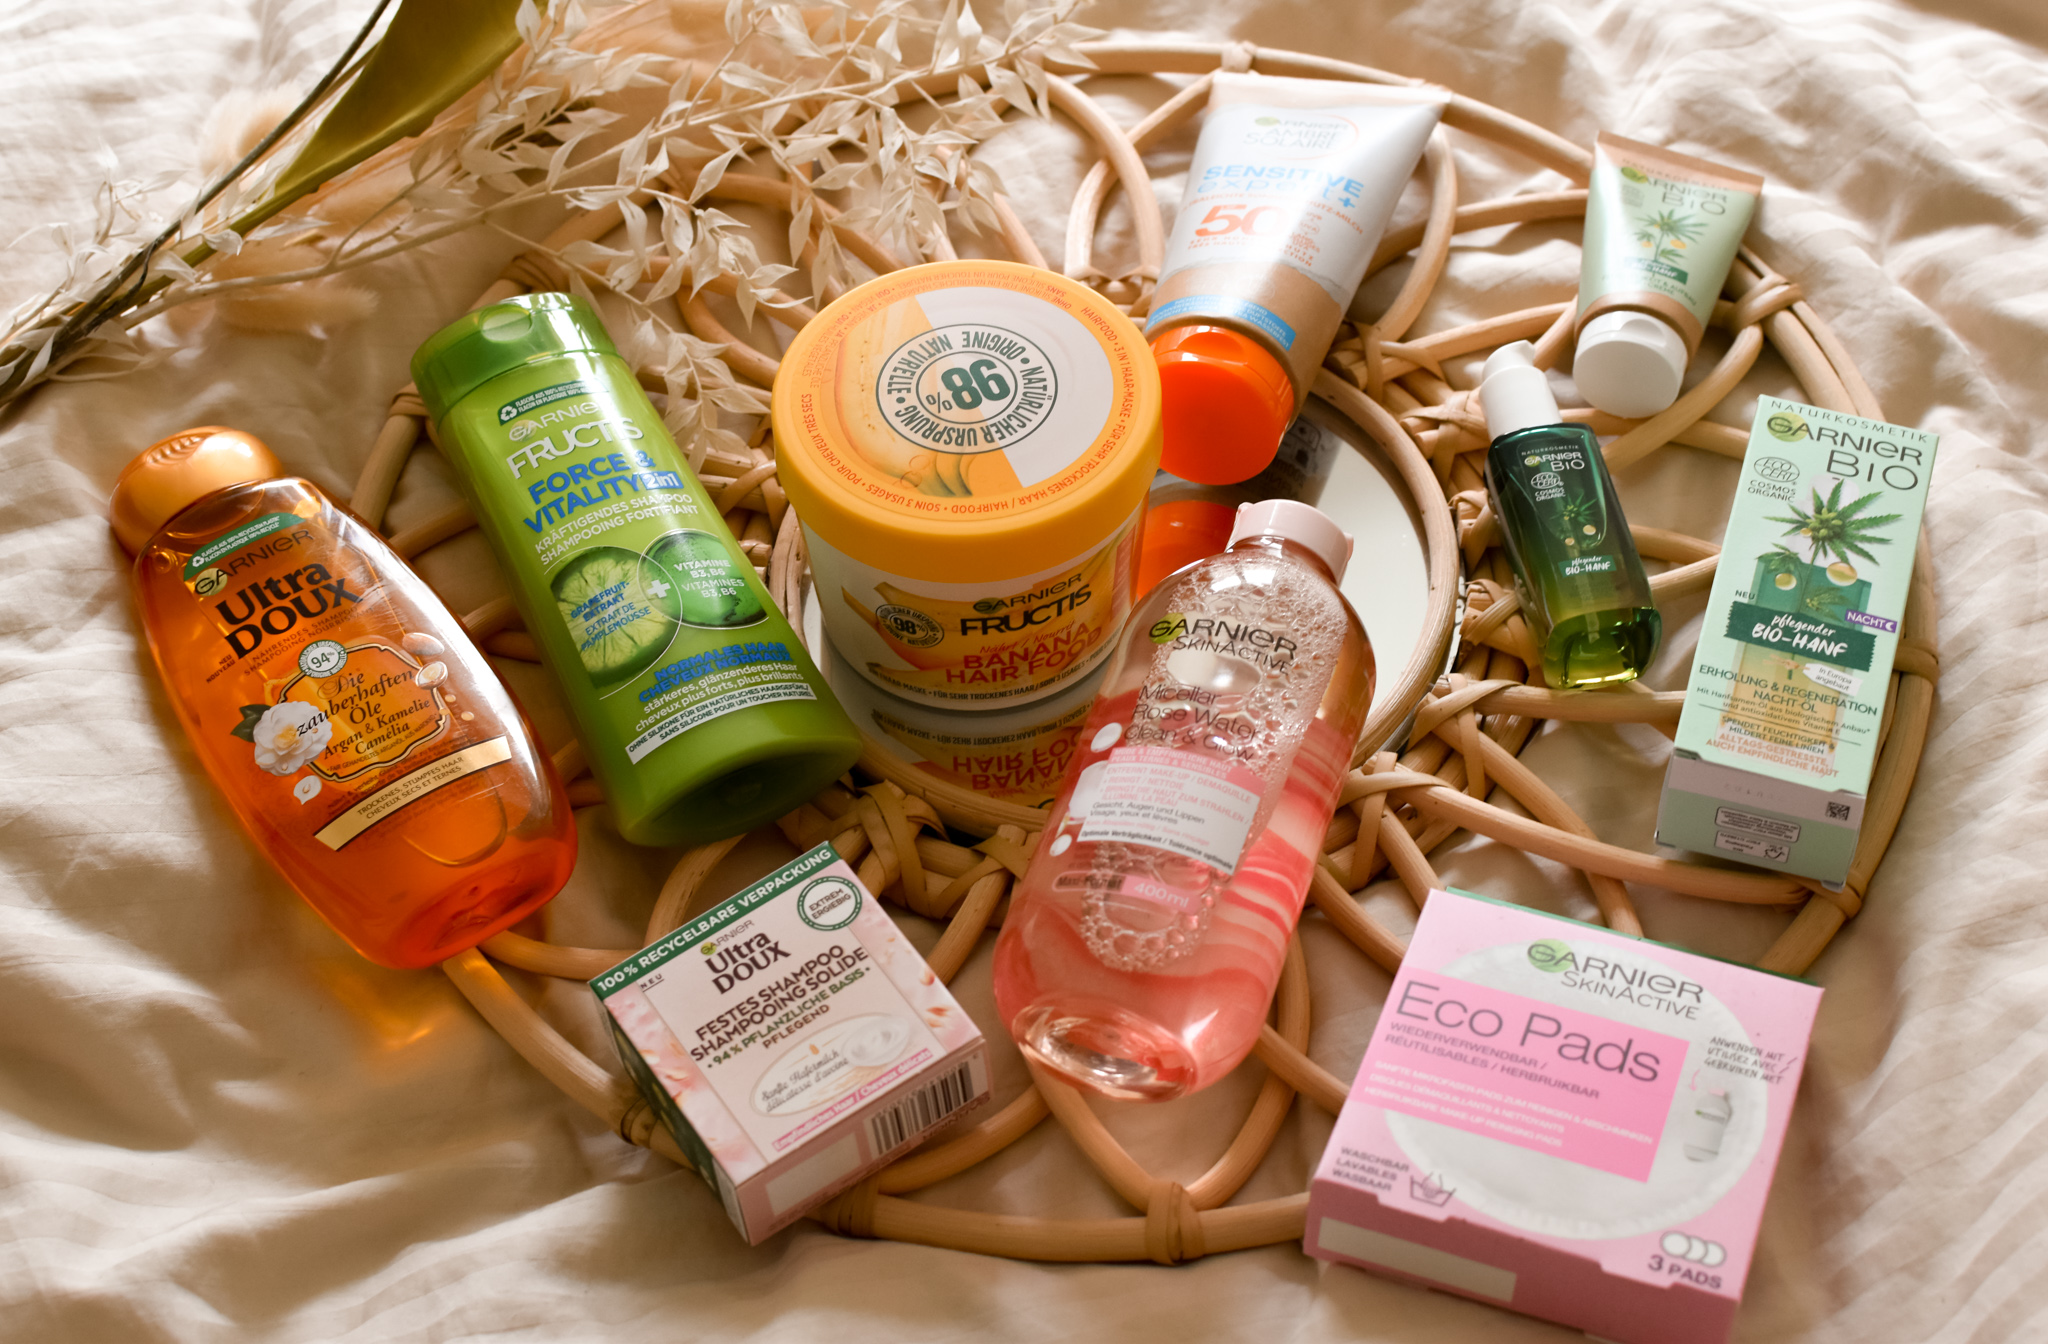 Assorted Garnier beauty products.